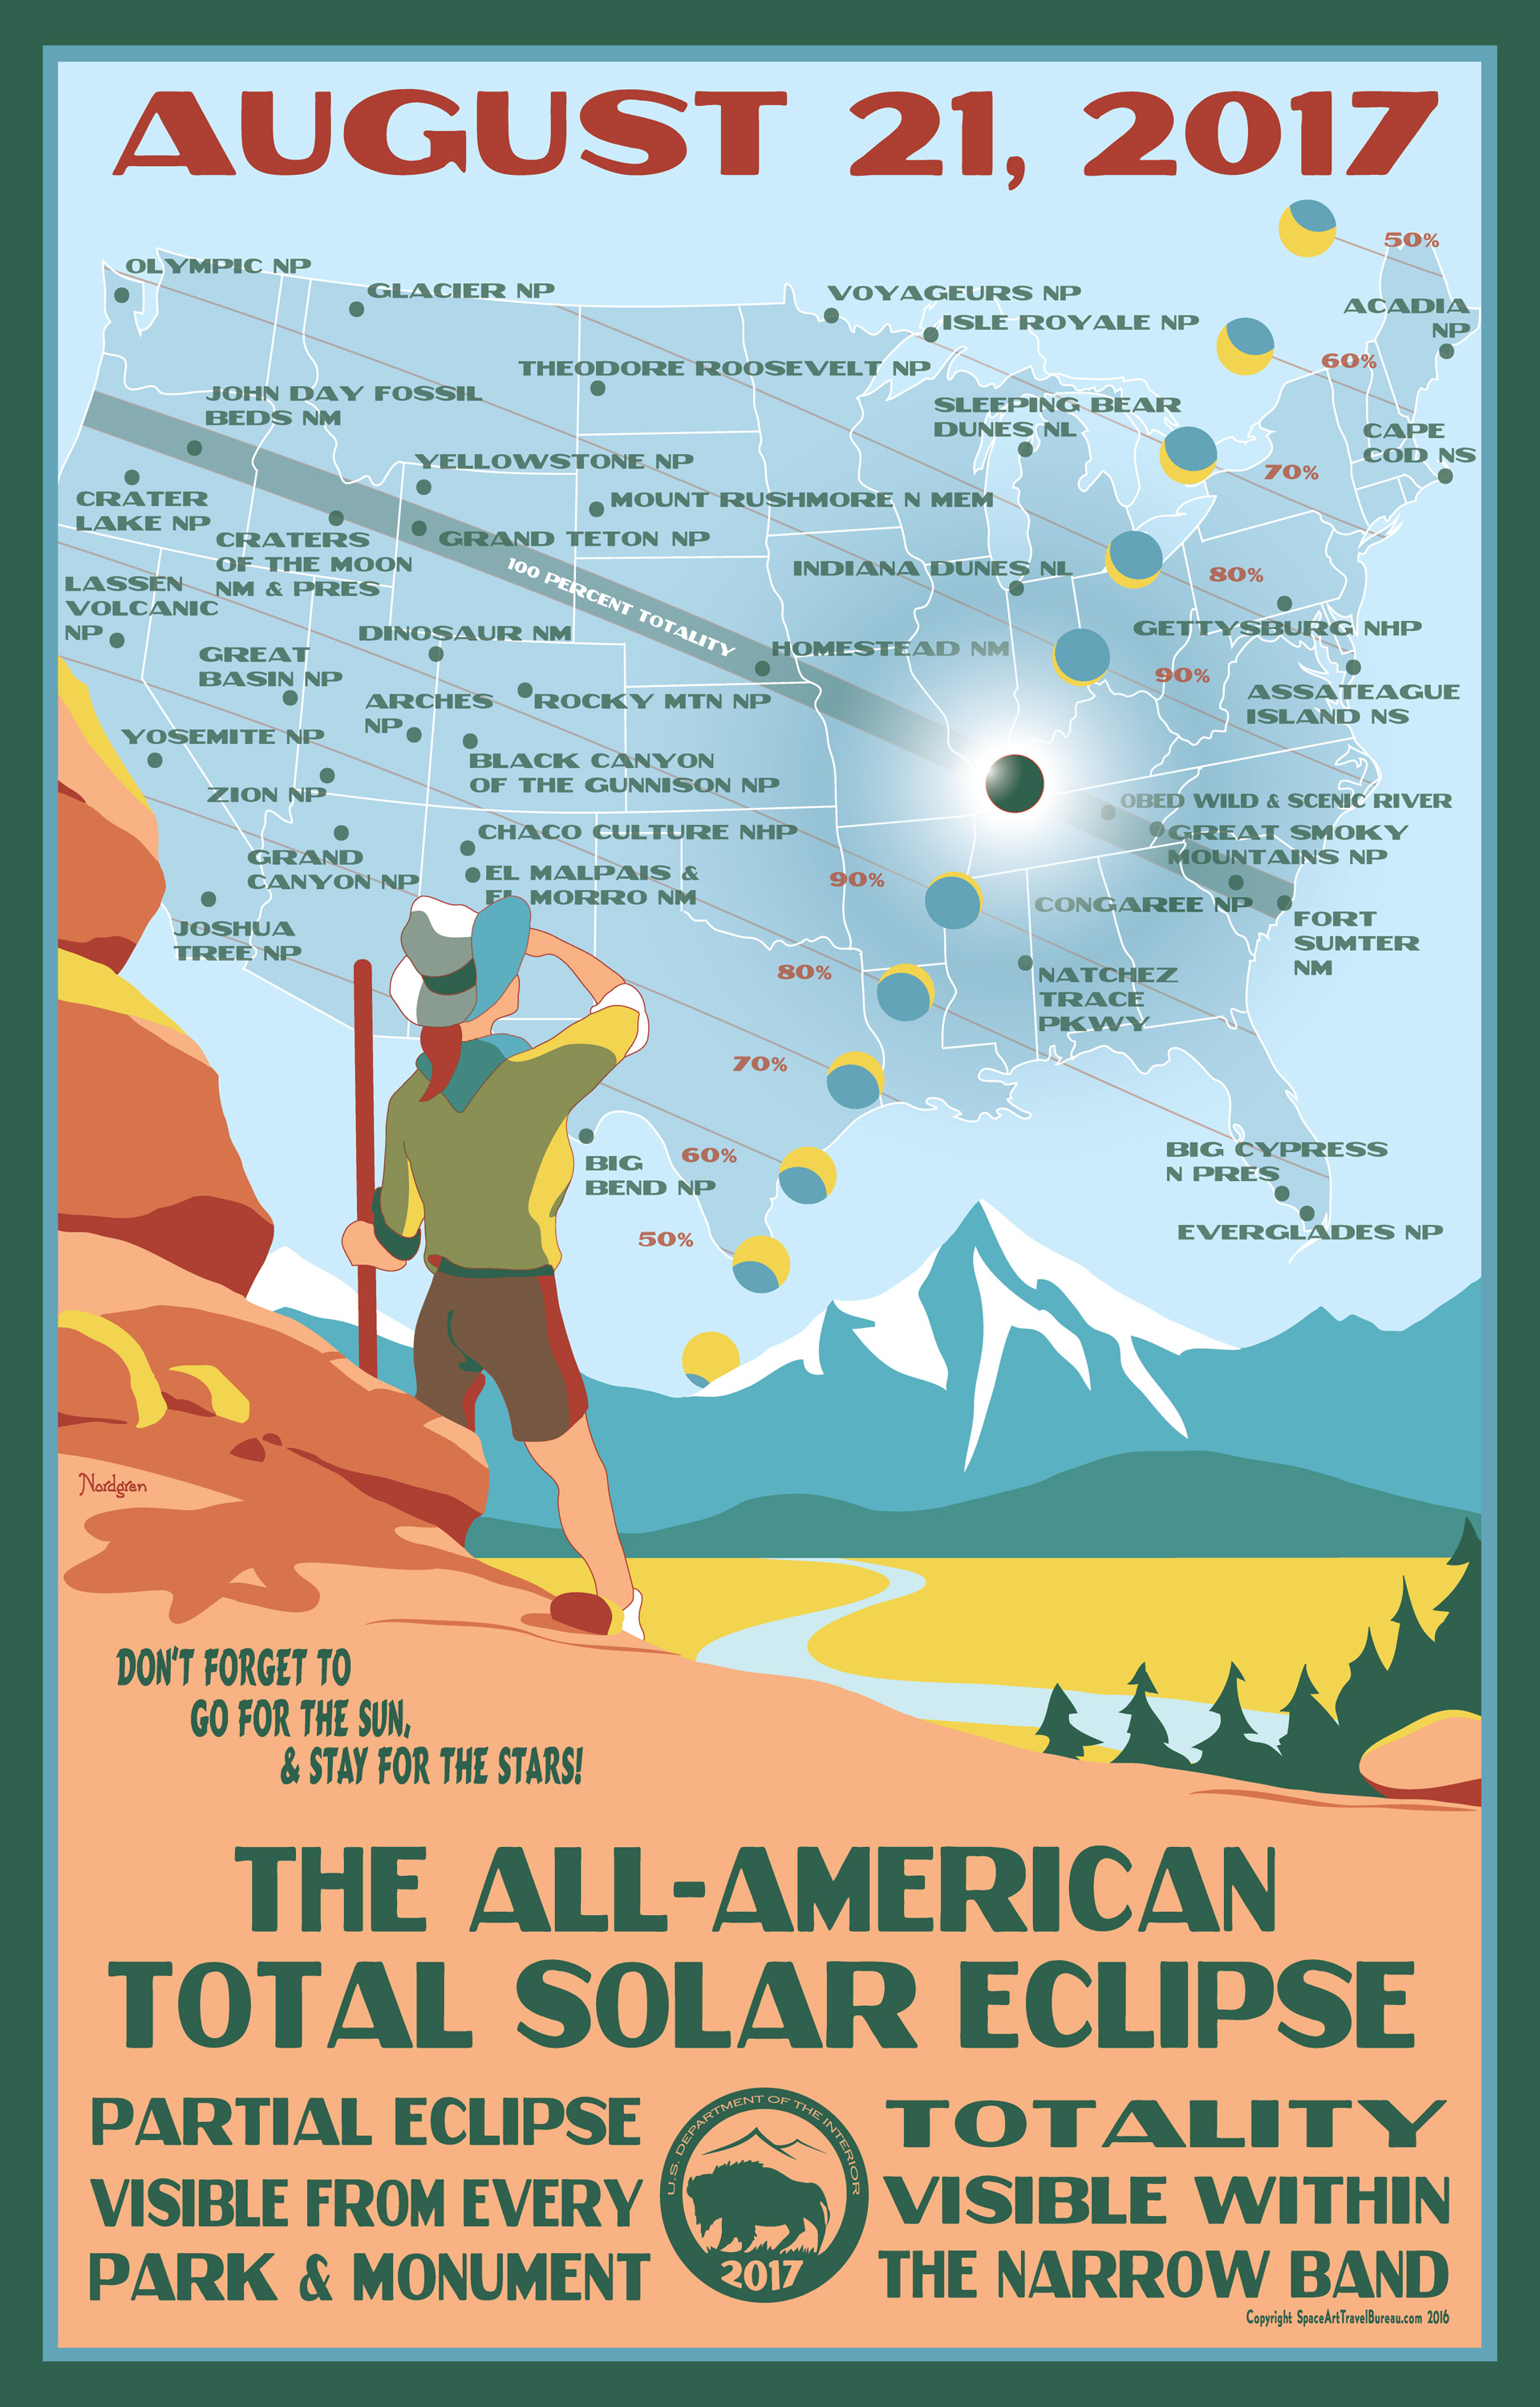 These gorgeous posters of national parks will make you excited for the solar eclipse